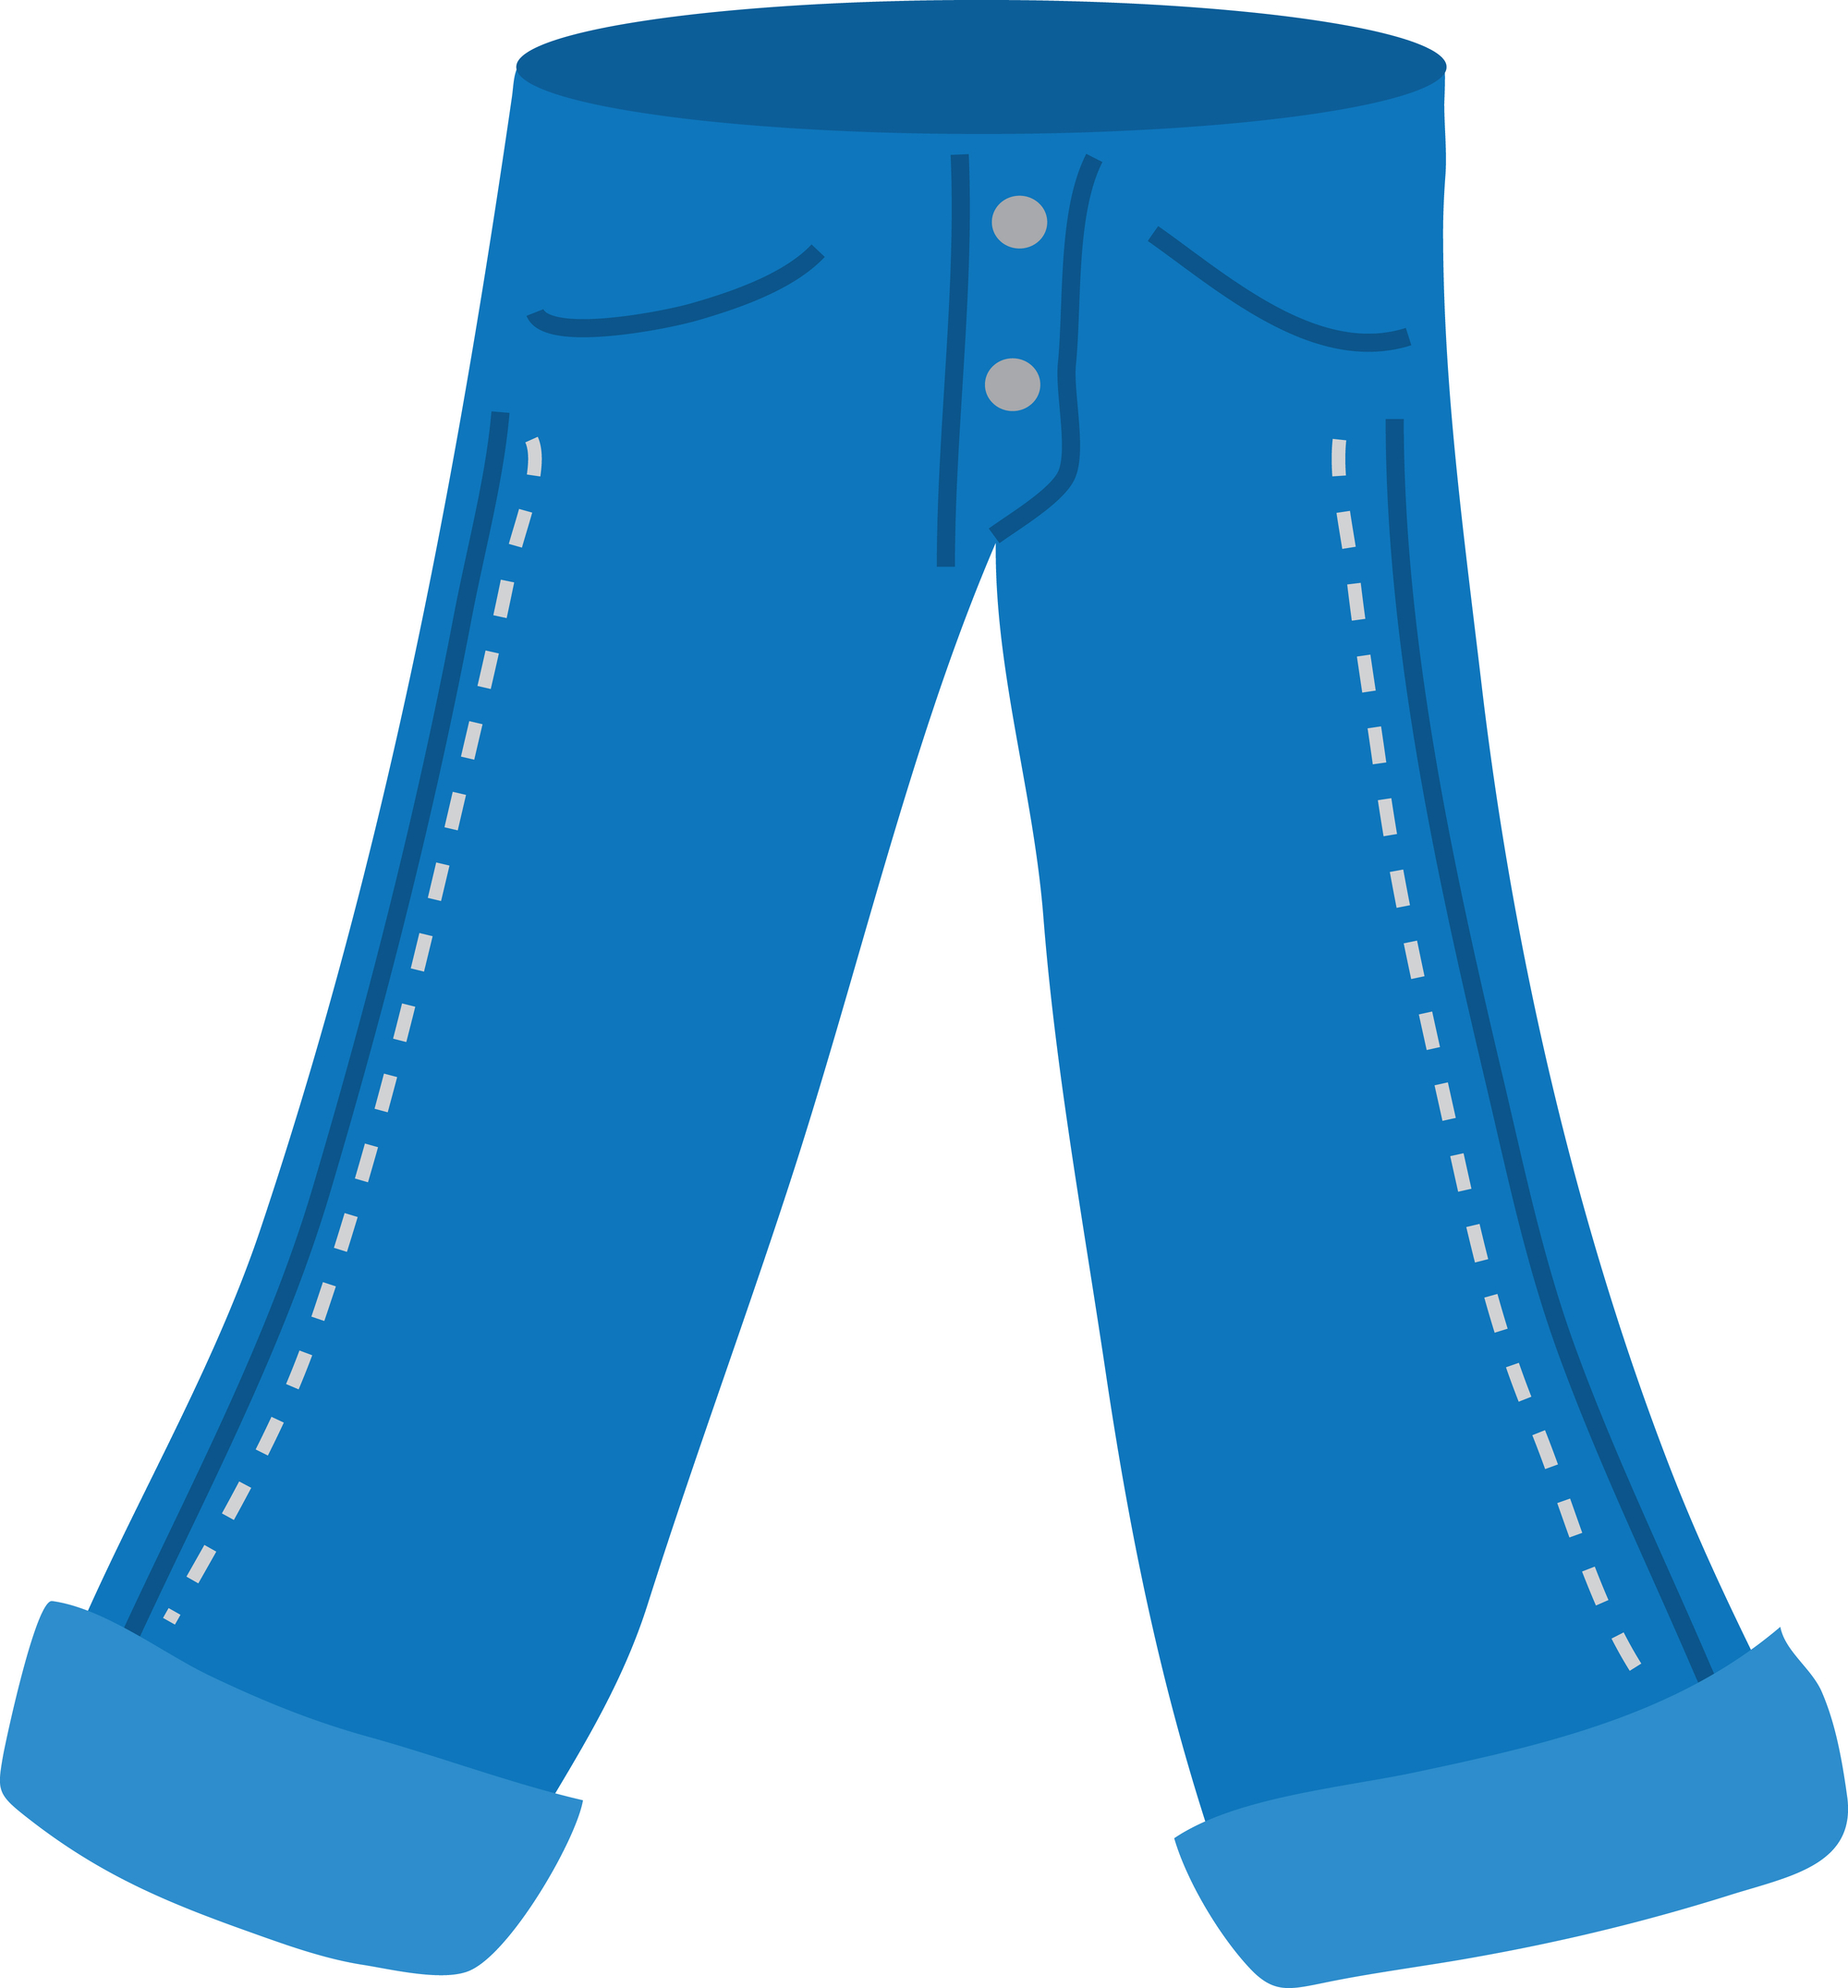 Put on pants clipart white background hq